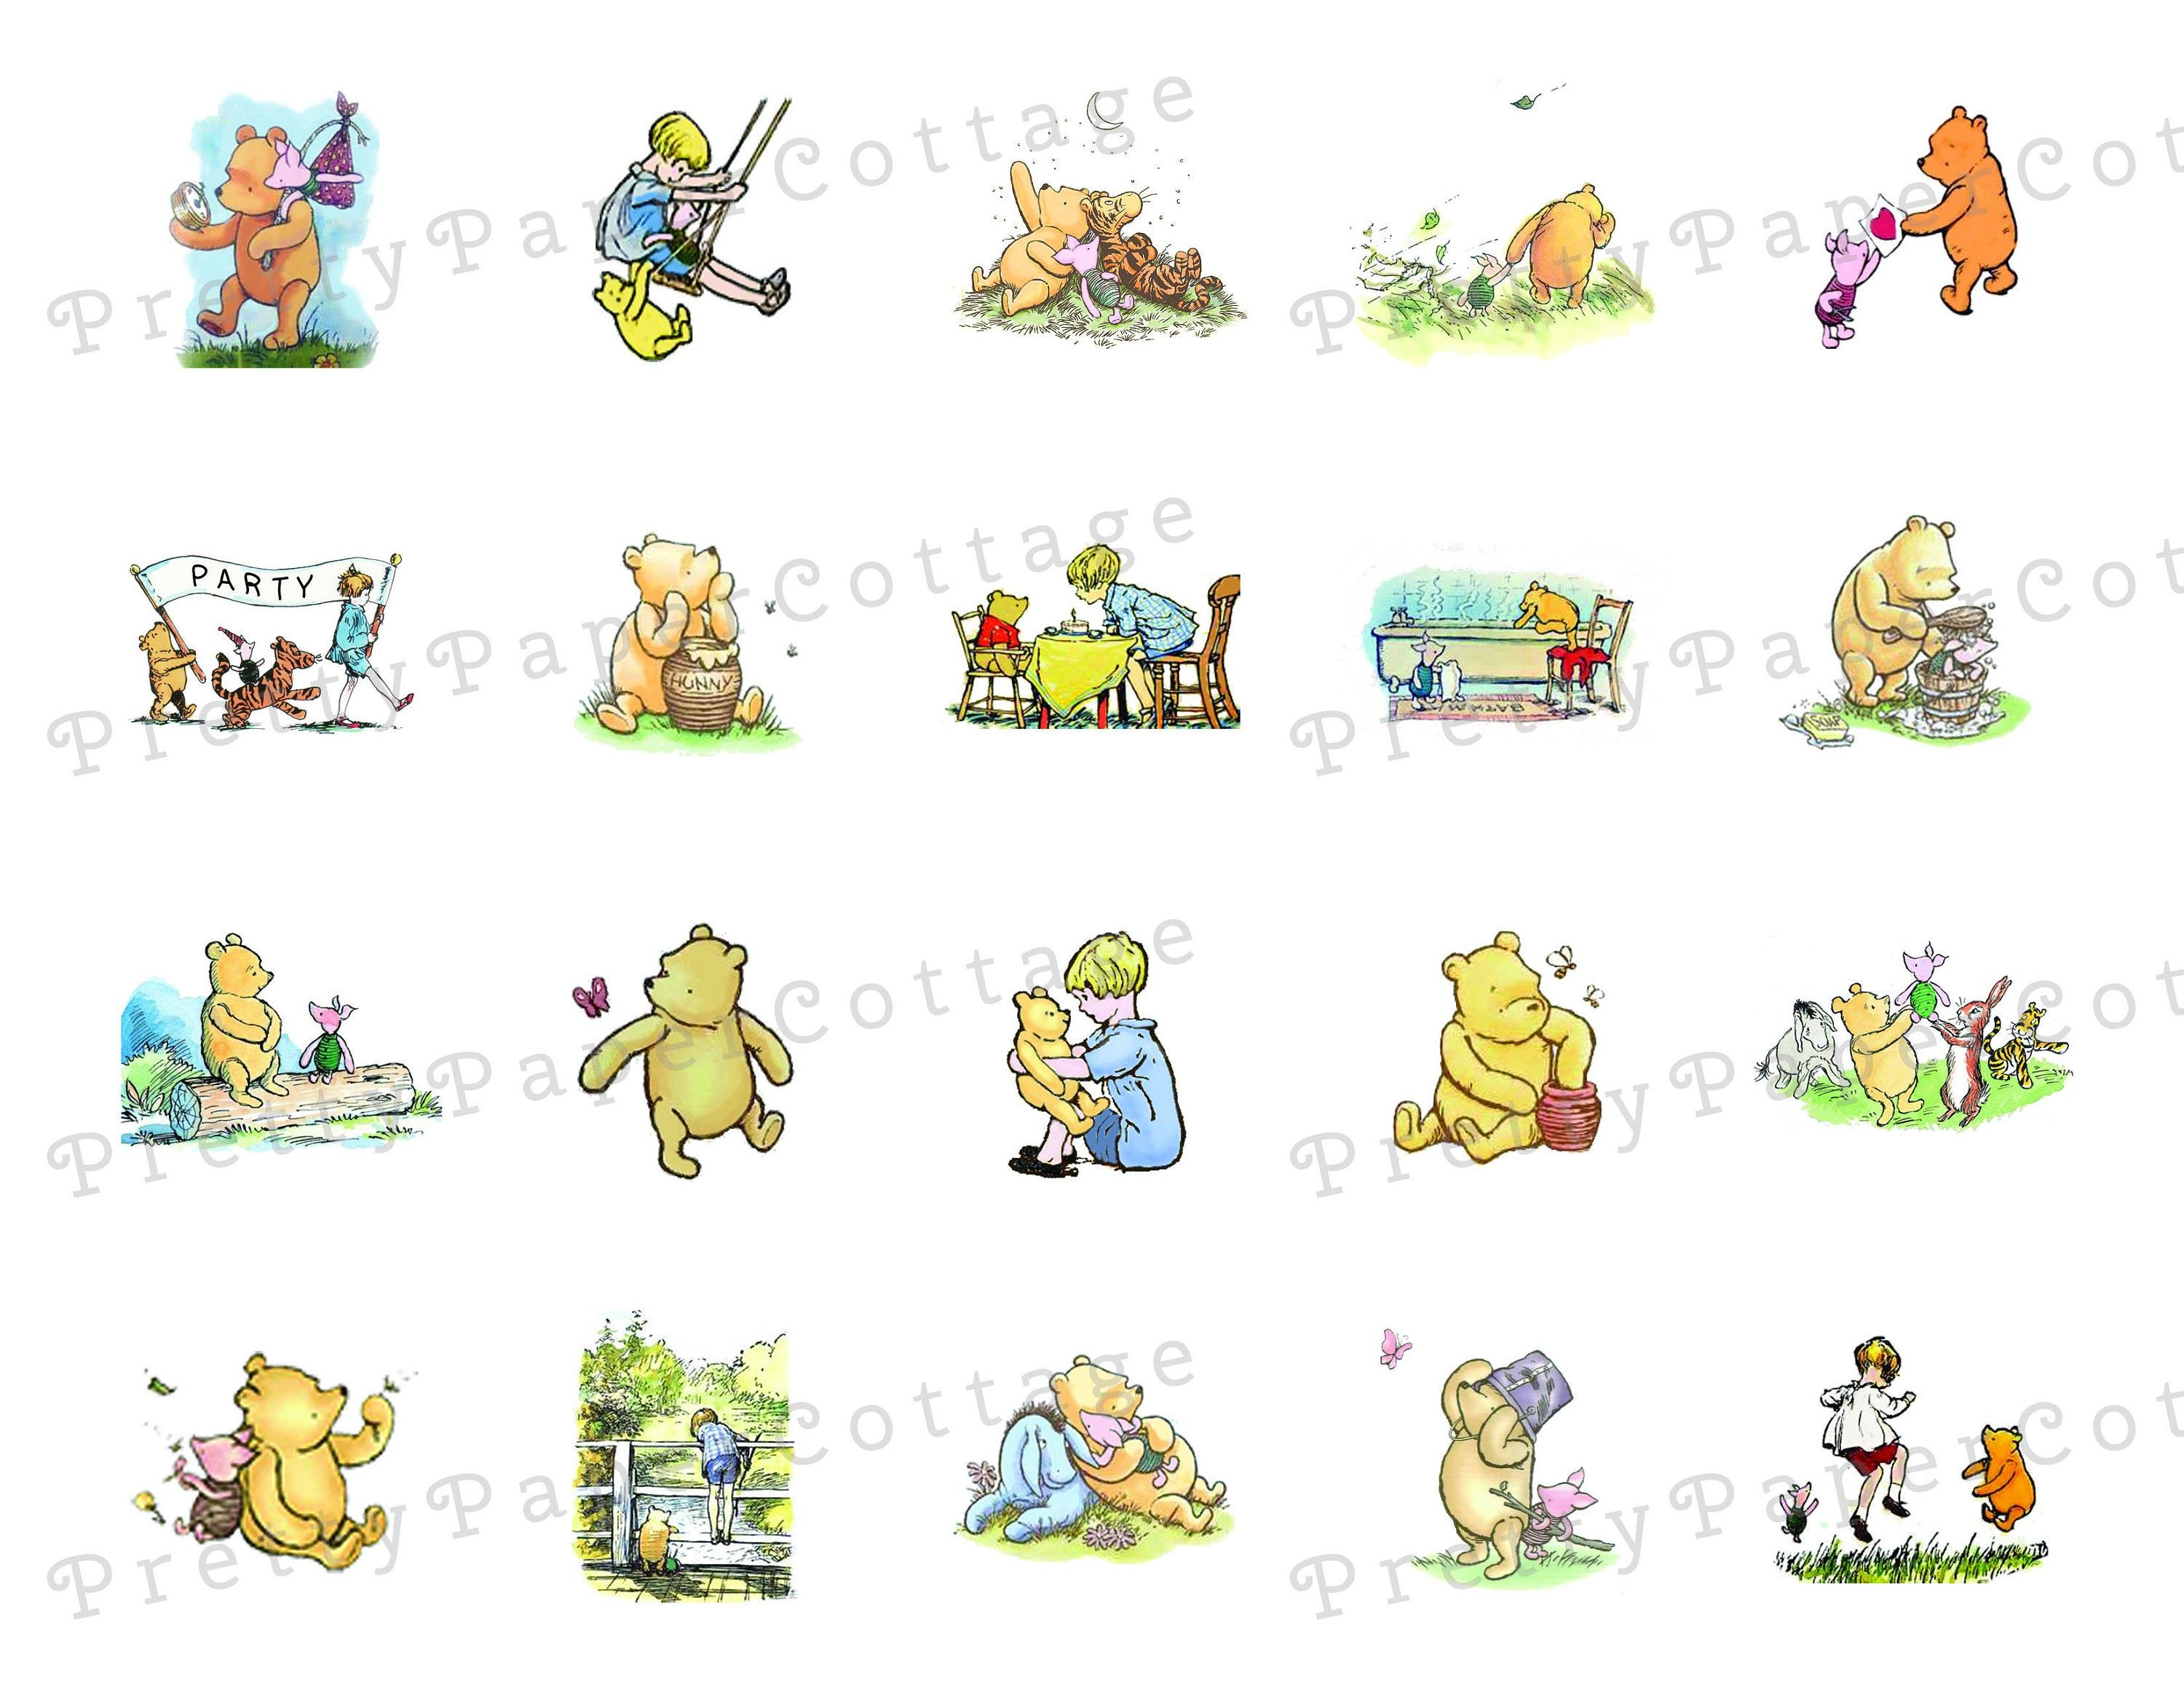 Printable Winnie The Pooh Designs Tags Stickers Cupcake Toppers Digital Instant Download Jpg 1 With Circles 1 Without Si In 2020 Winnie The Pooh Winnie Pooh